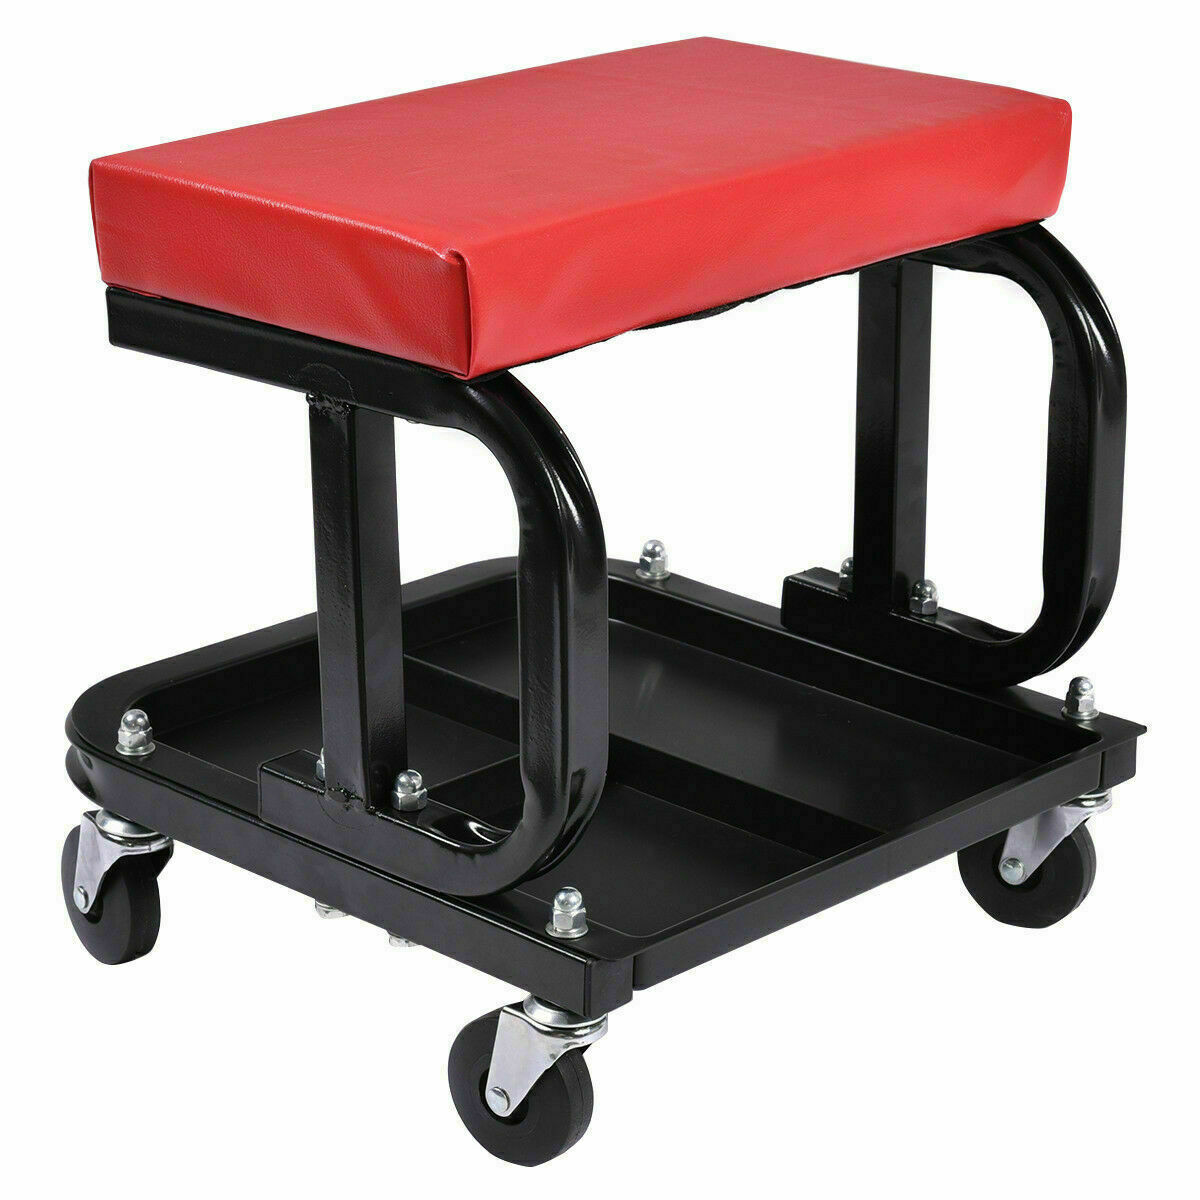 Chair Mechanical Workshop With 4 Wheels With Tray Tools Repair Vehicles